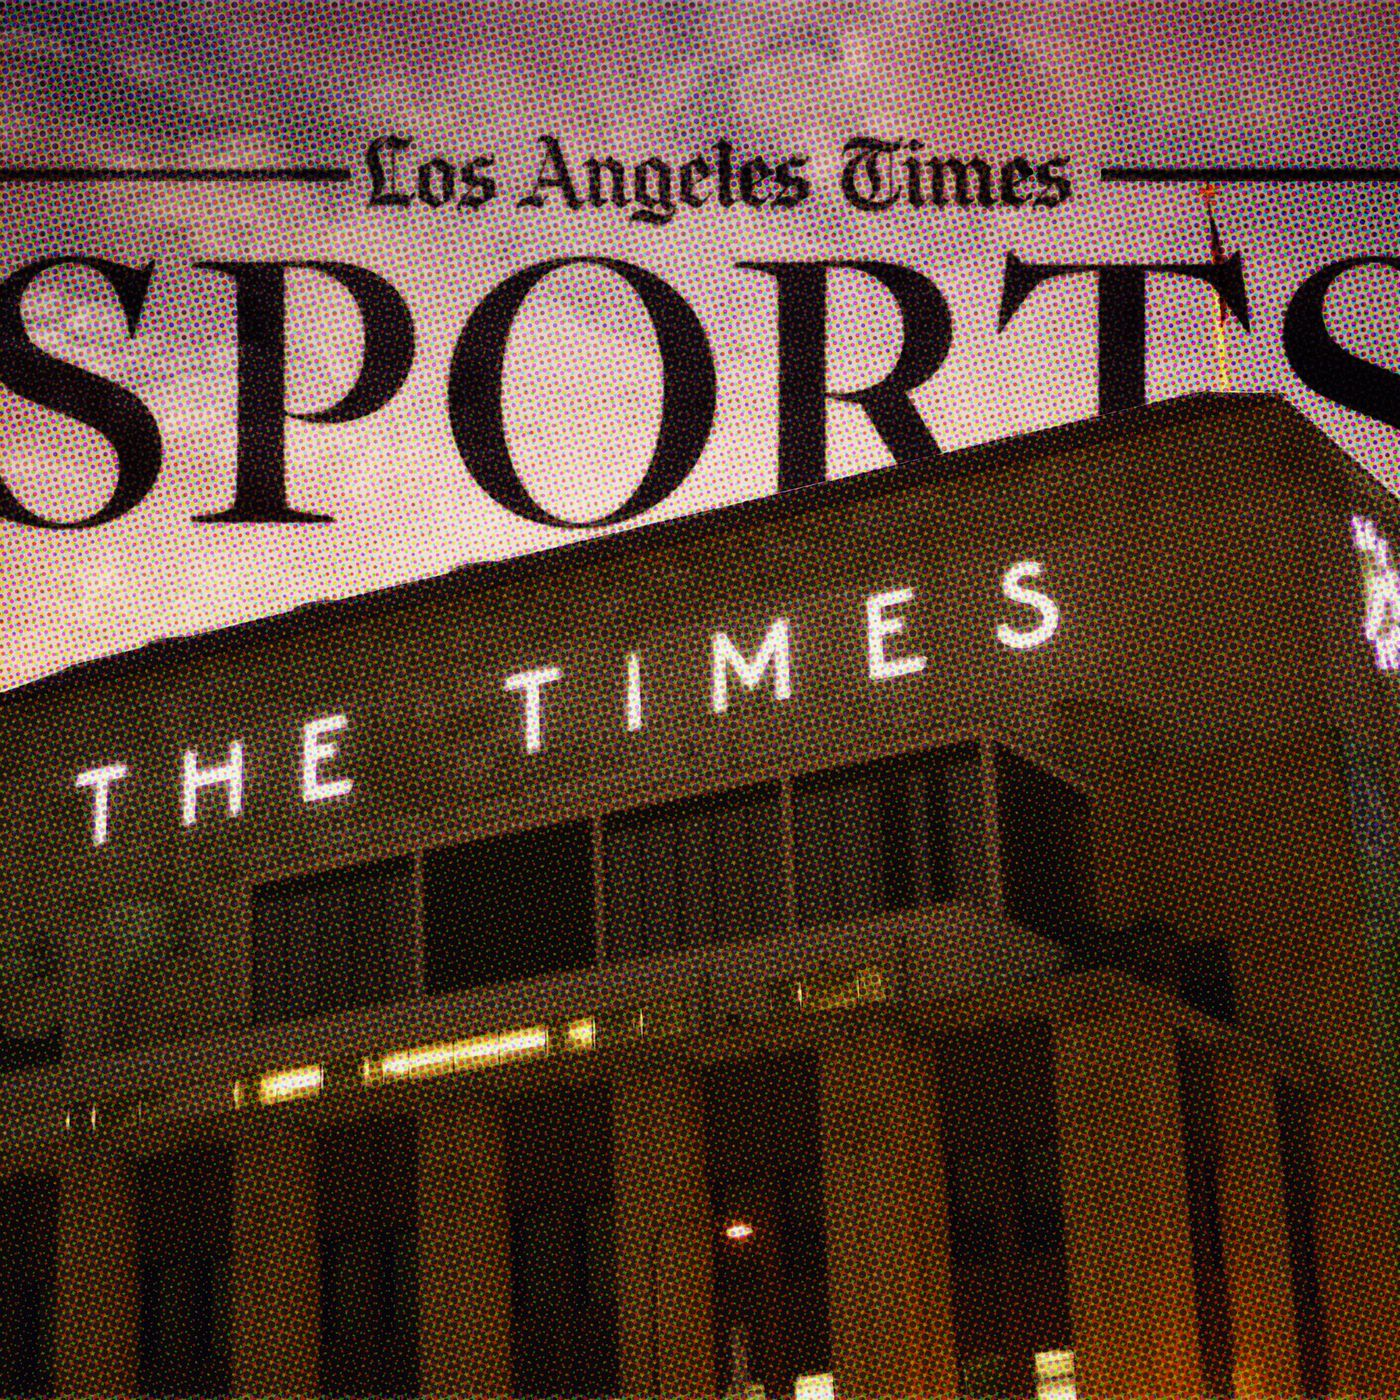 theringer.com - Bryan Curtis - Farewell to a Newspaper Office: The L.A. Times Sports Desk Bids Adieu